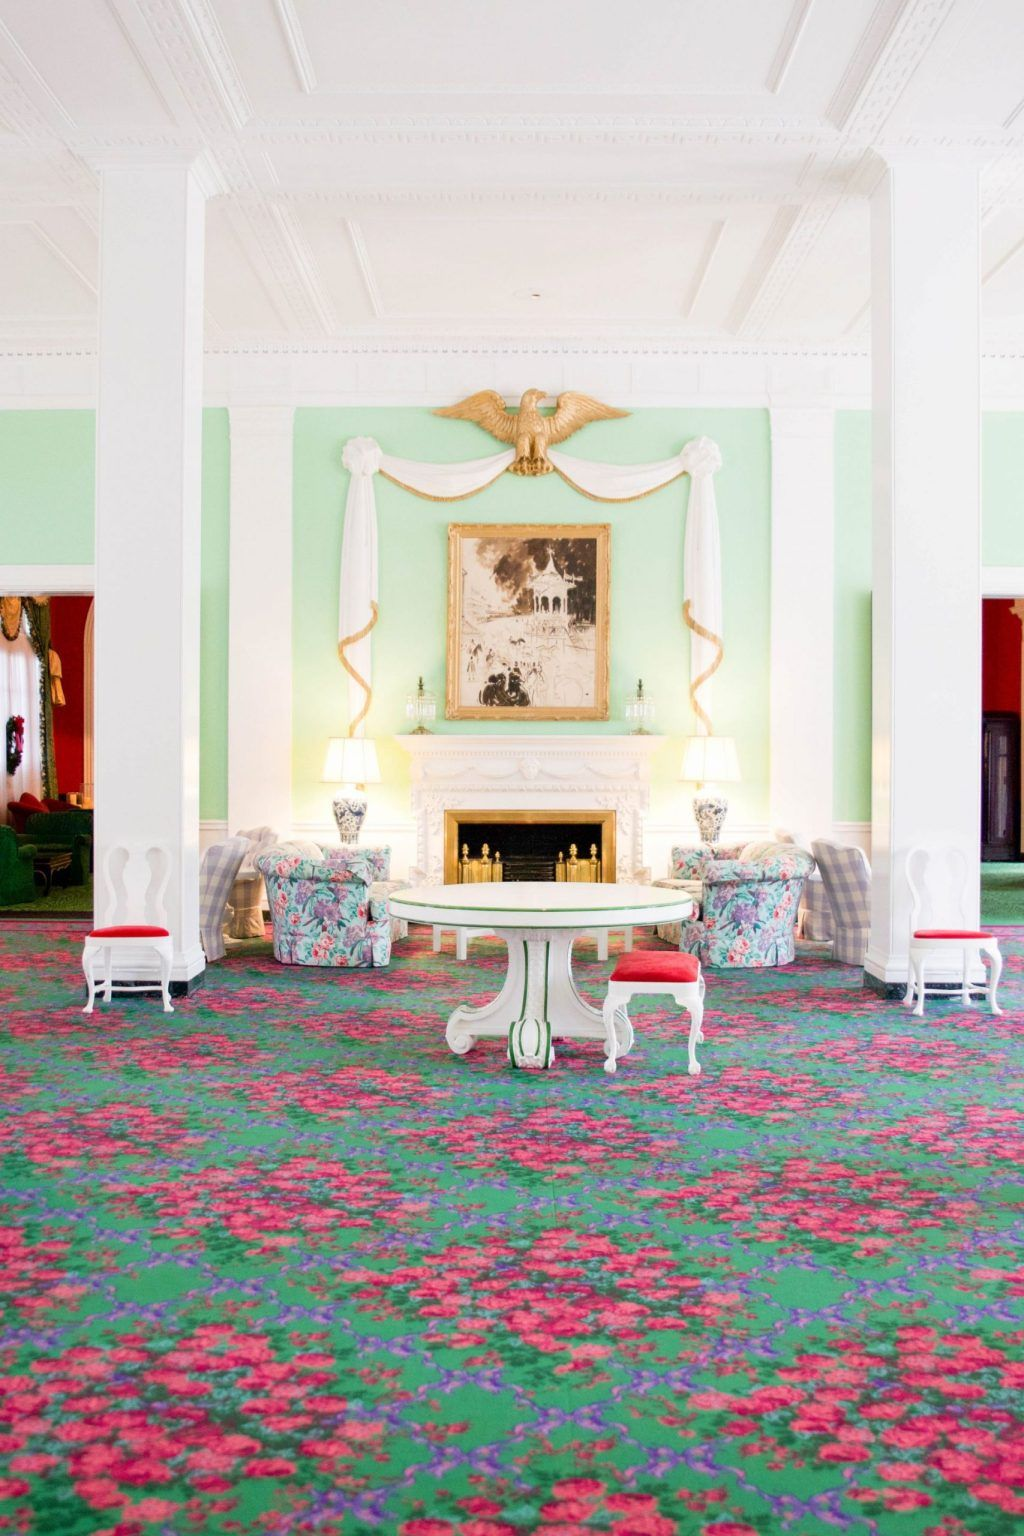 Our Stay at the Greenbrier: Wintertime at the Greenbrier Review